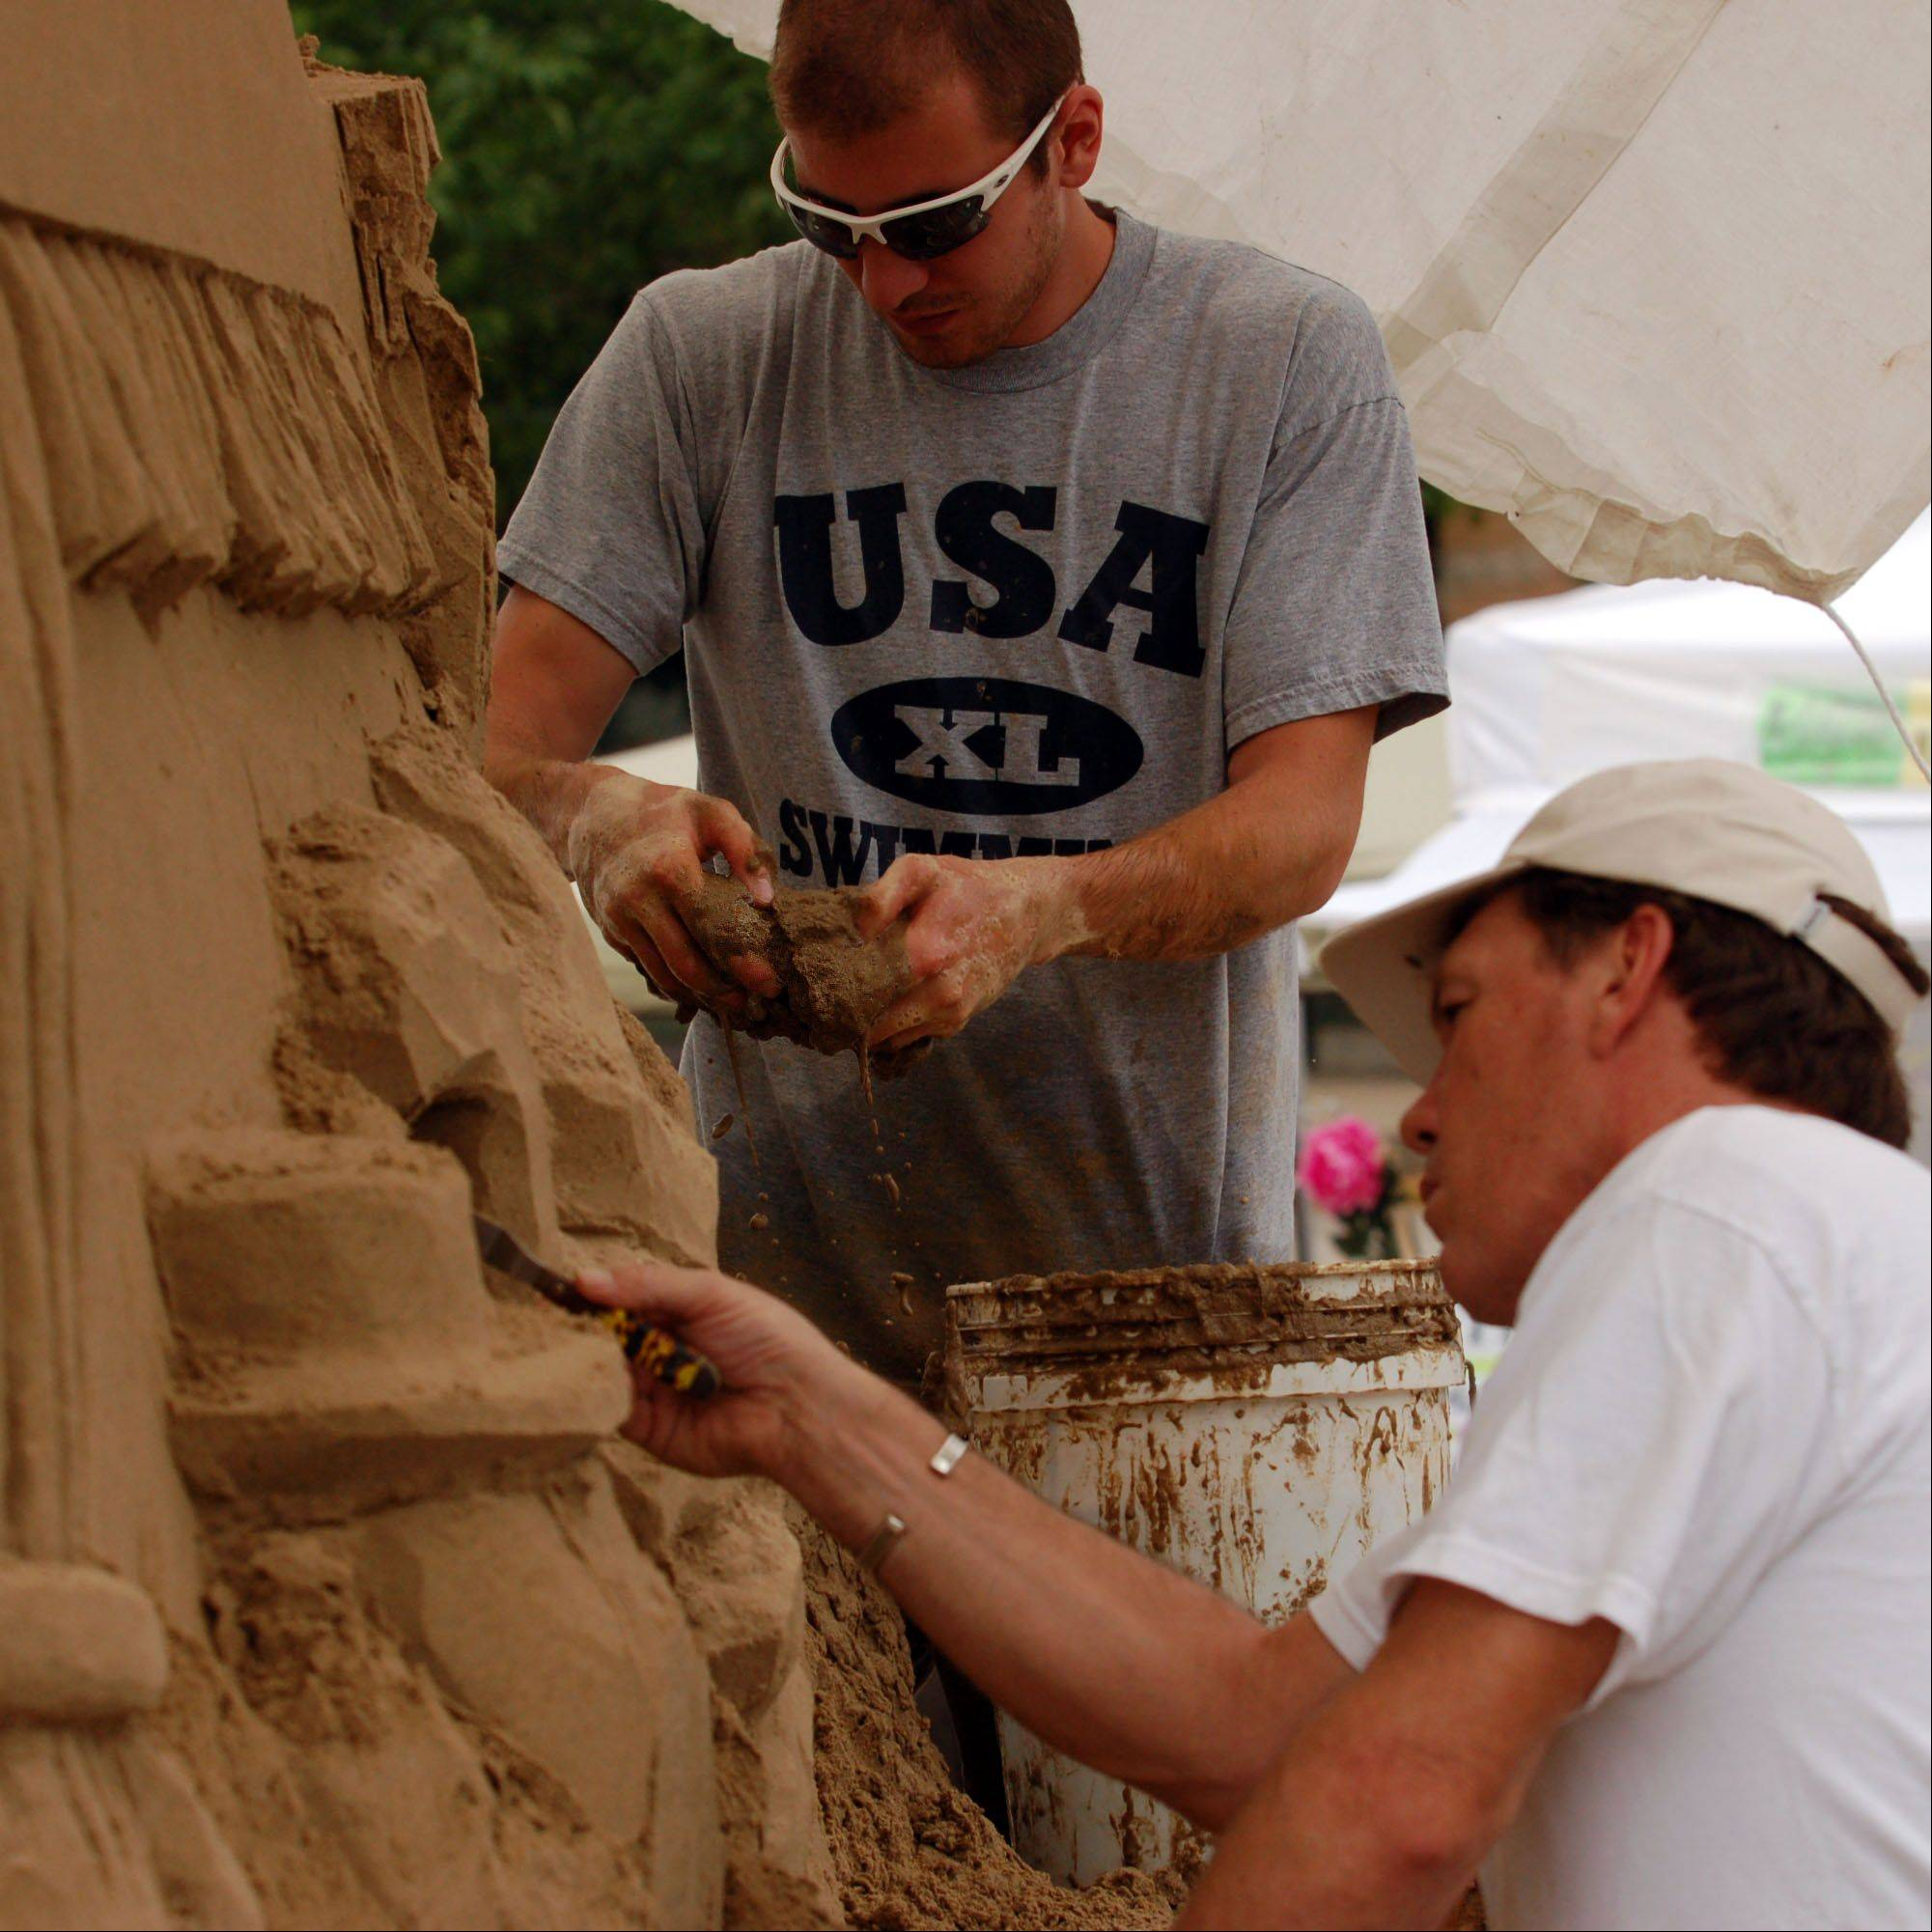 Buck Hoover of Woodstock, center, of The Sand Sculpture Company assists experienced sculptor Charlie Beaulieu of Woodstock, right, as they construct a work for last year's Pride of the Fox RiverFest festival. The company travels all around the world creating custom sand sculptures and sand castles for all types of events.